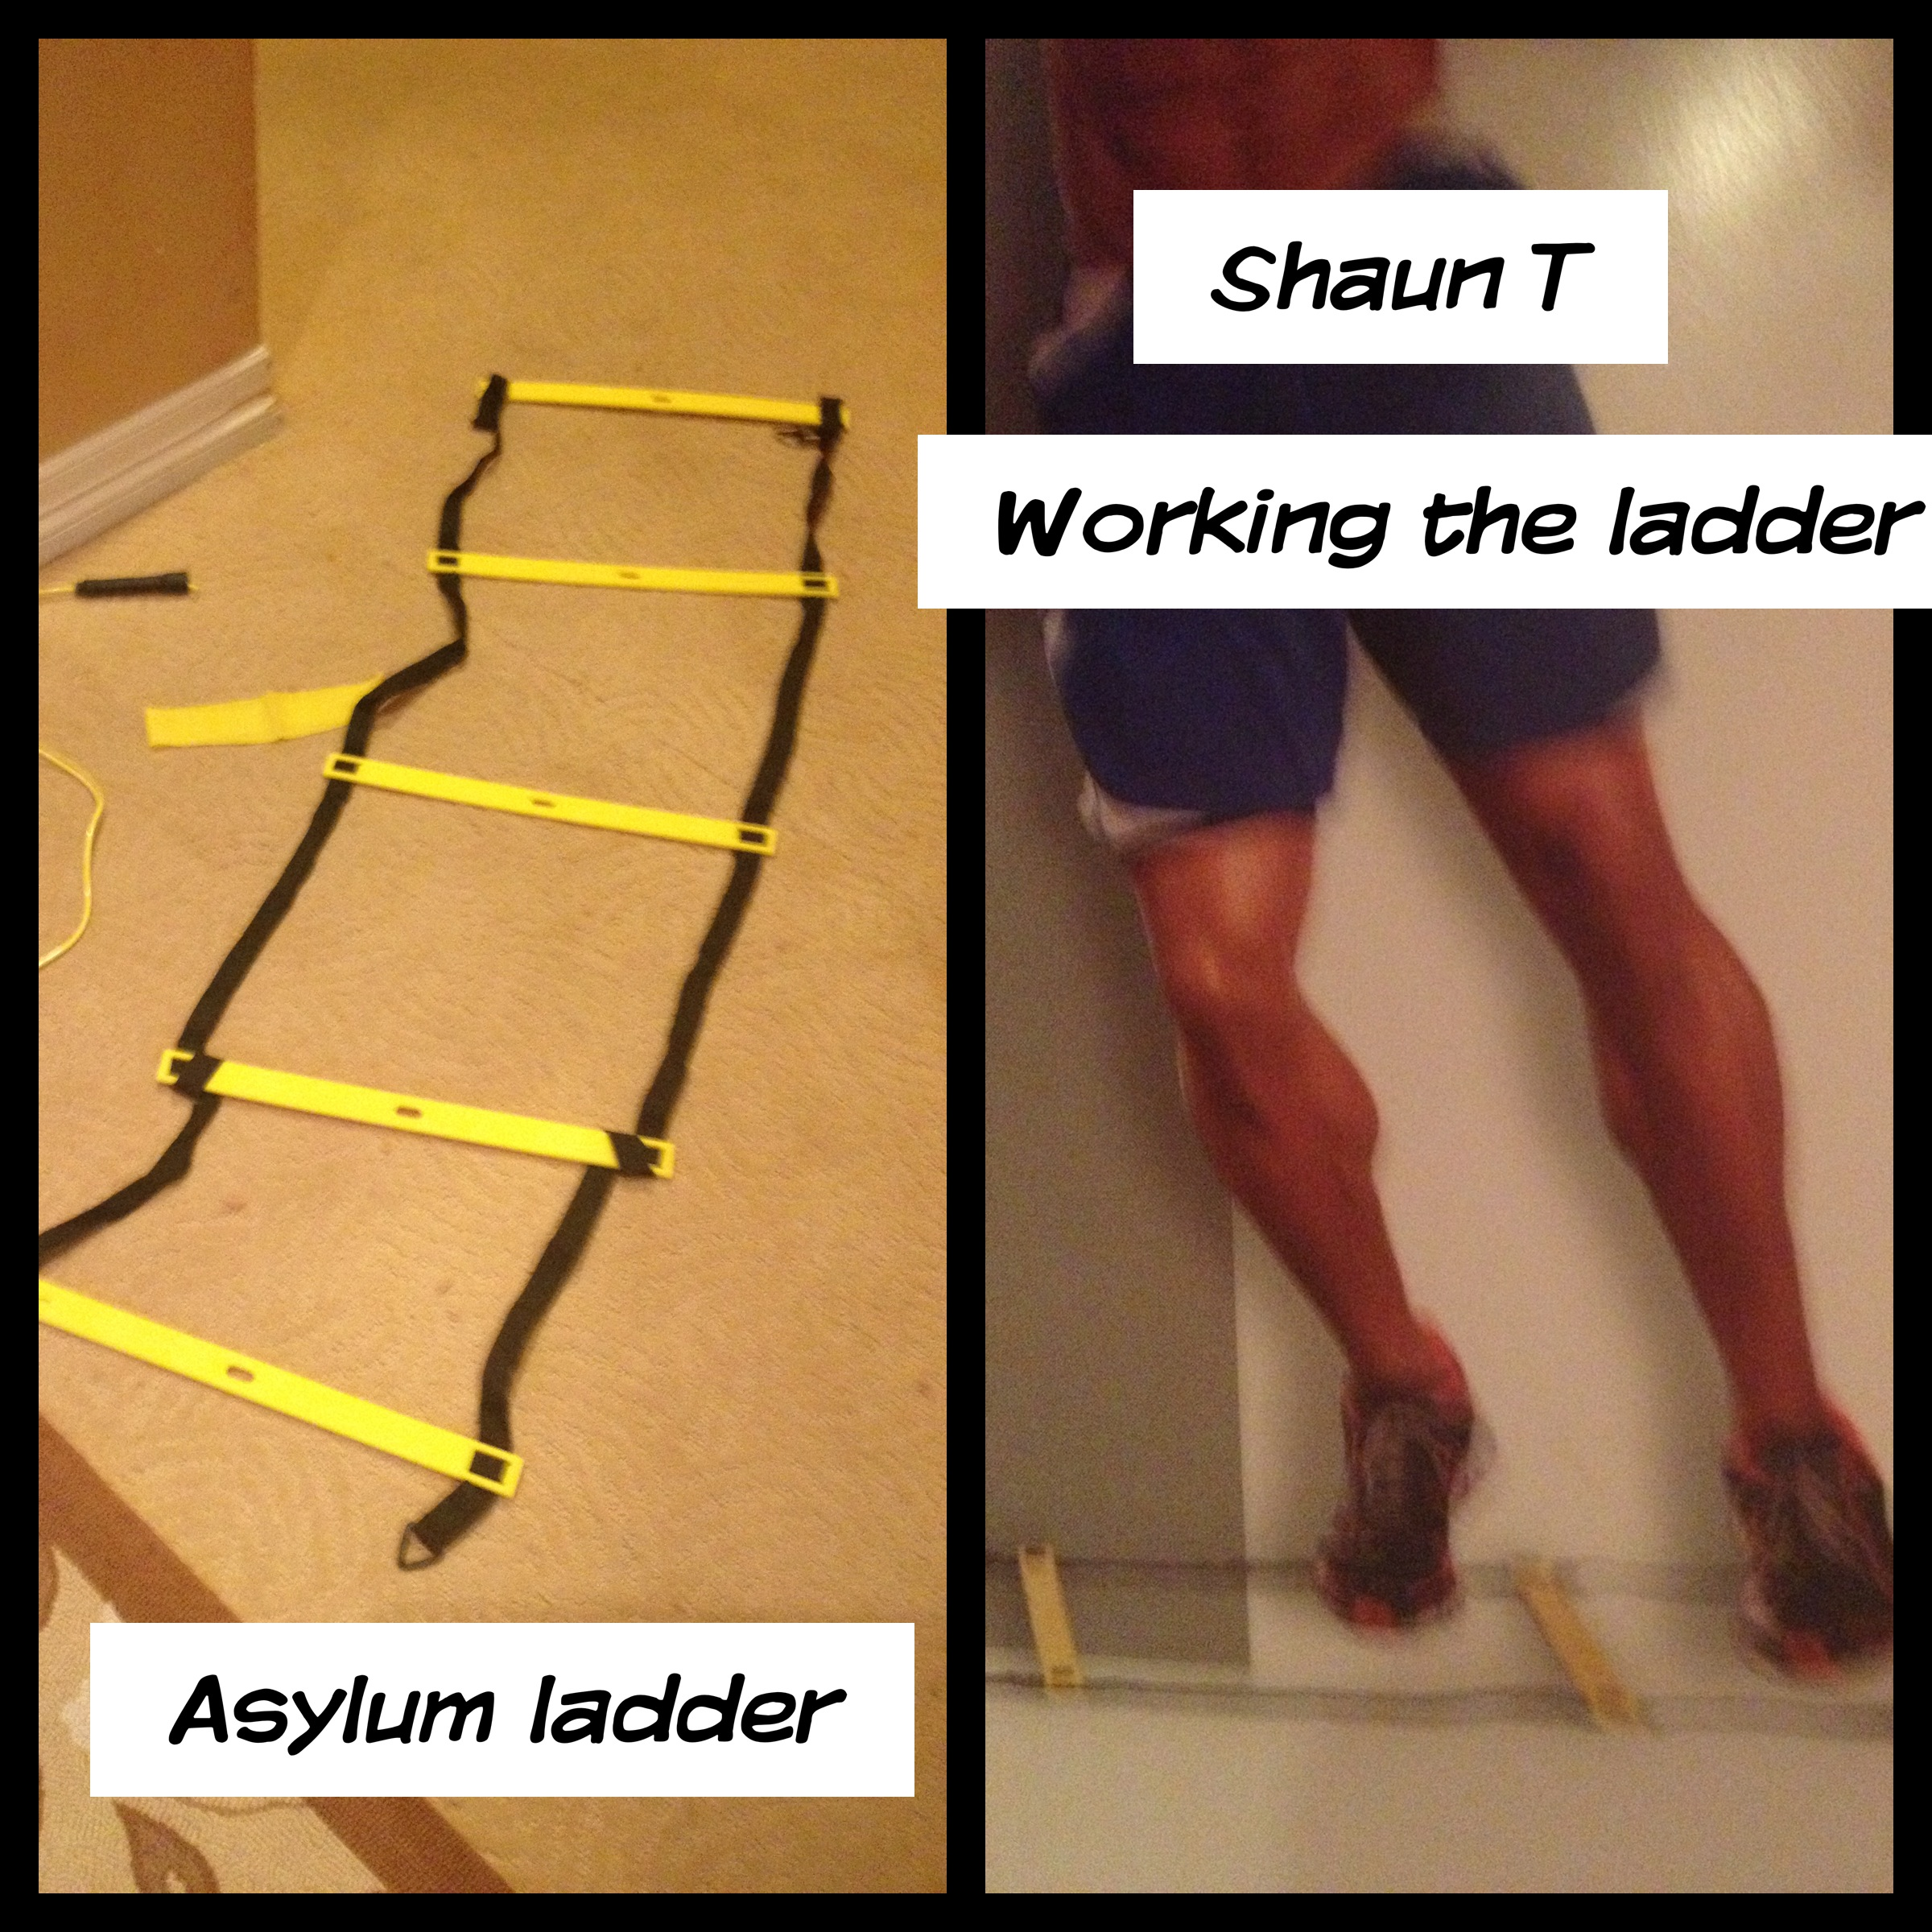 Yes, this is the Agility ladder - and that is truly Shaun T's pace - its not for sissy's!